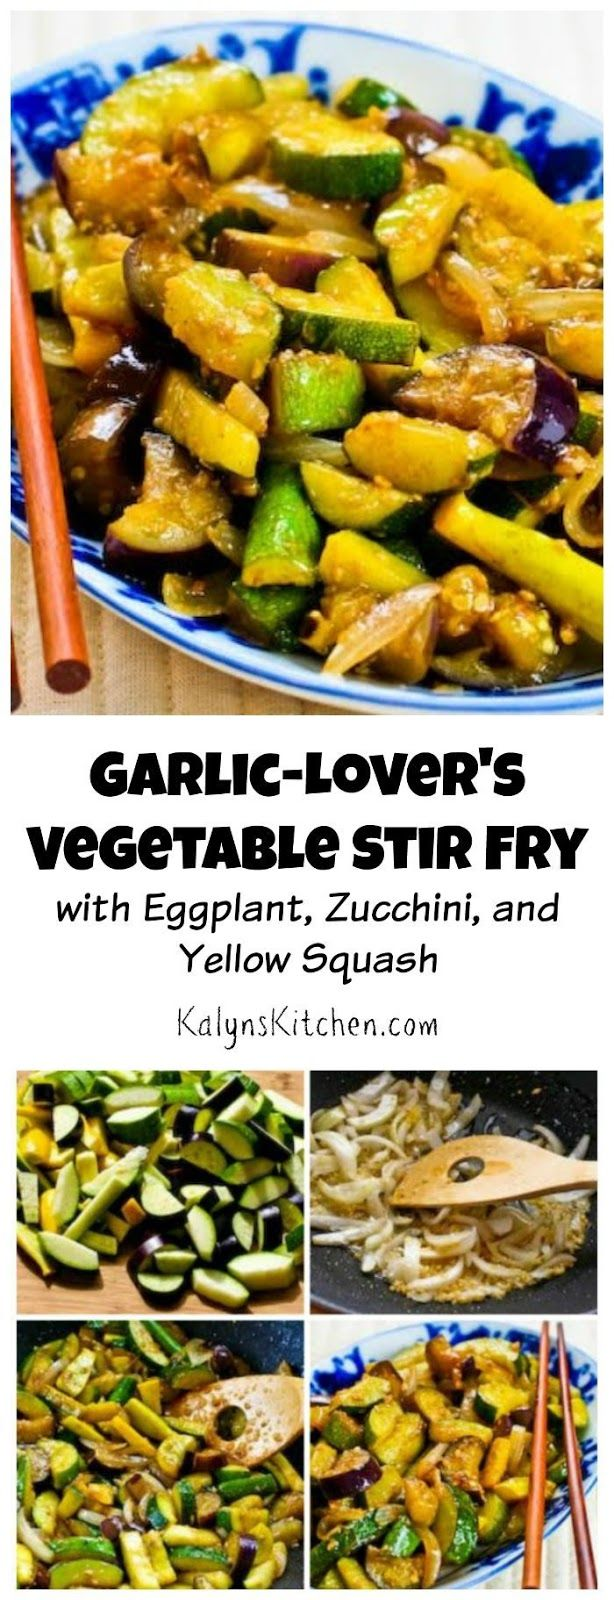 Garlic-Lover's Vegetable Stir Fry with Eggplant, Zucchini, and Yellow Squash is a tasty side dish or meatless main dish that's Low-Carb and Gluten-Free. [from KalynsKitchen.com]